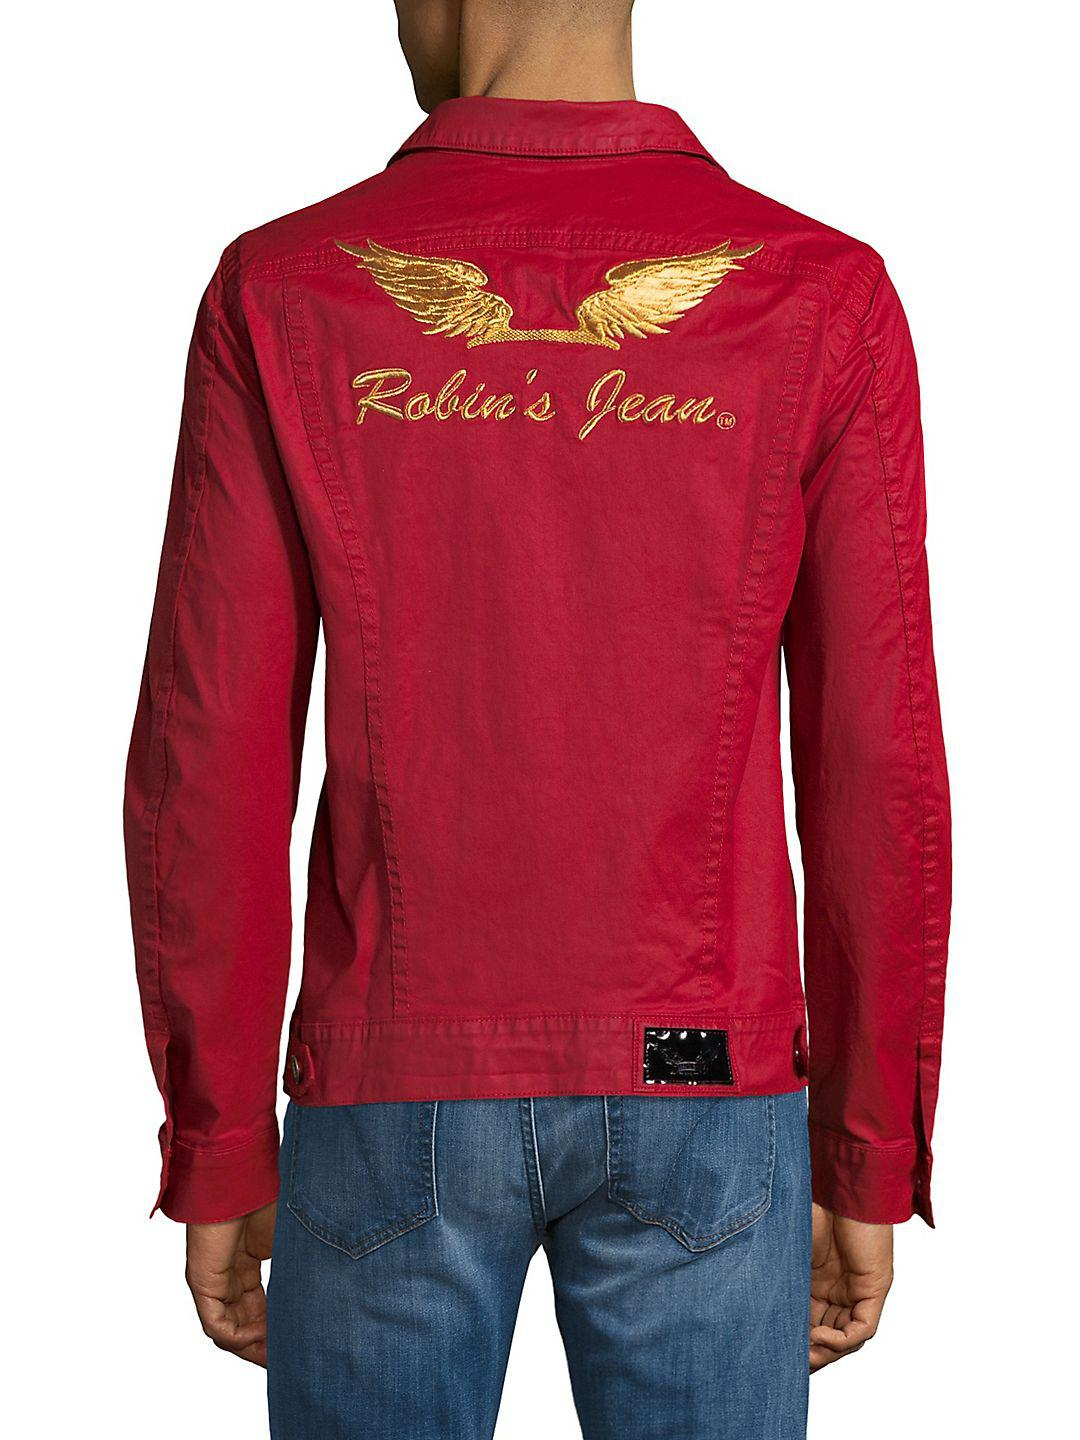 Robin's Jean Cotton Button-through Jacket in Red for Men